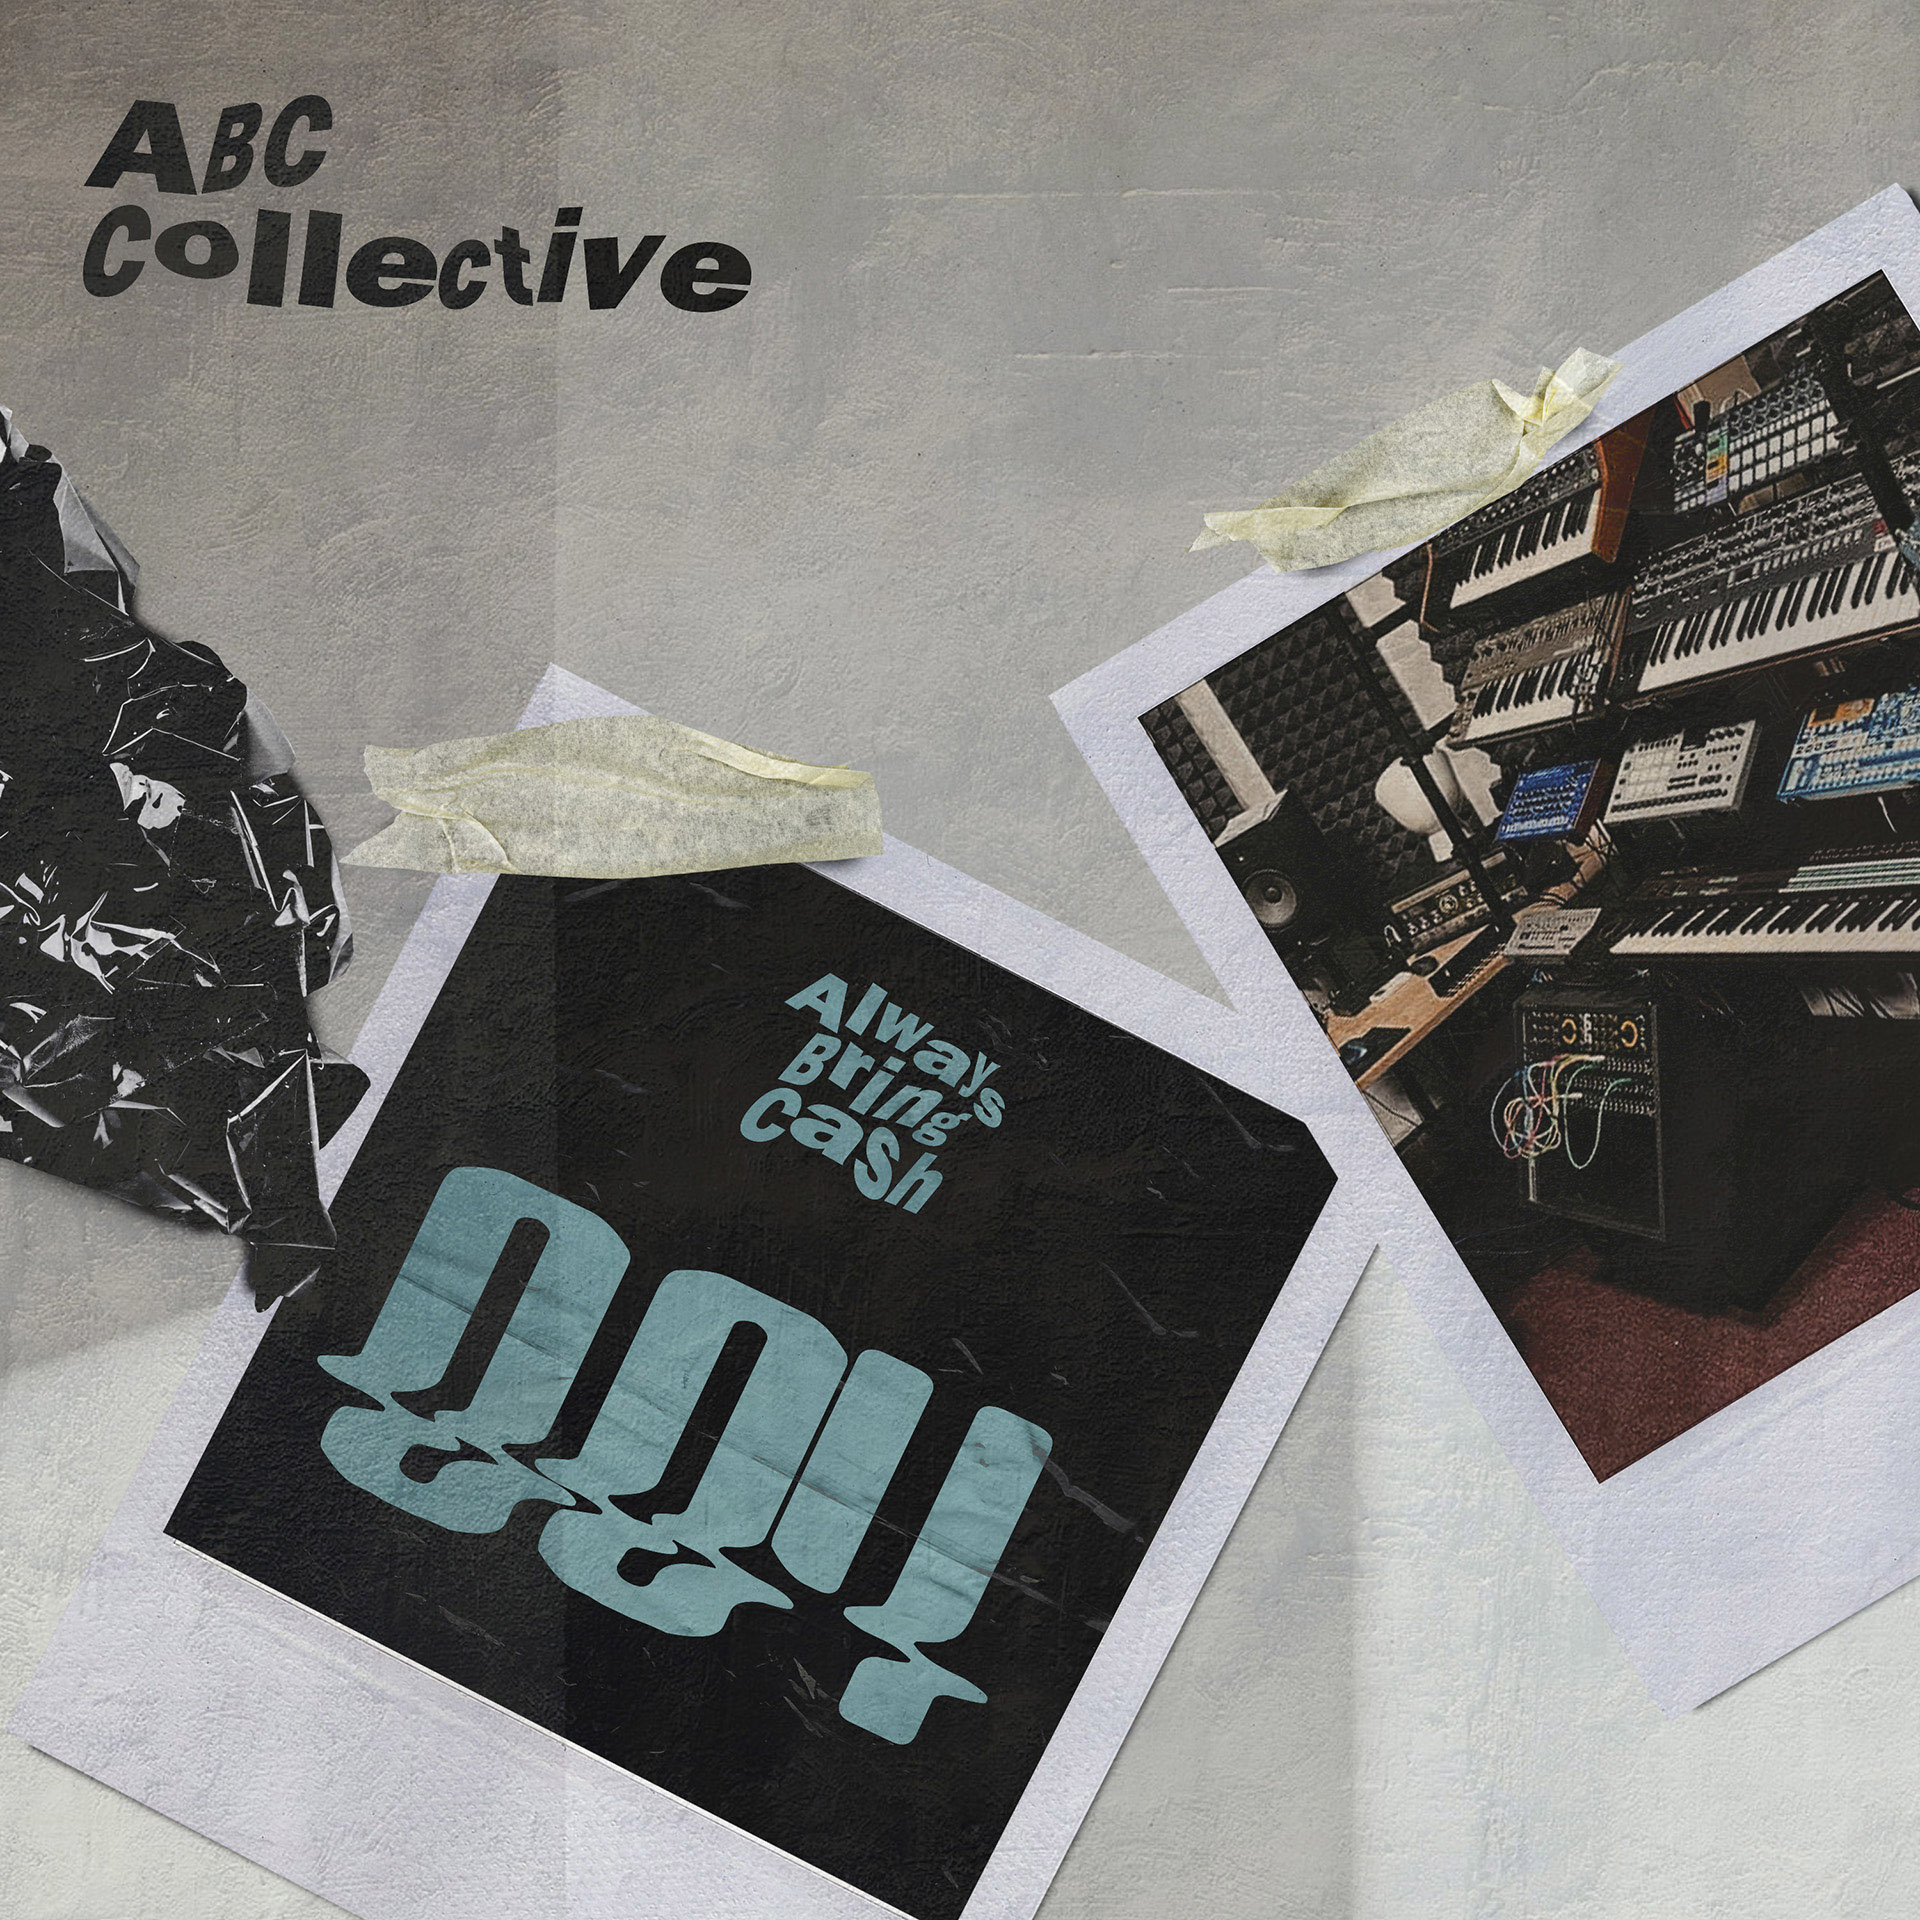 ABC Collective - 004 [Always Bring Cash]